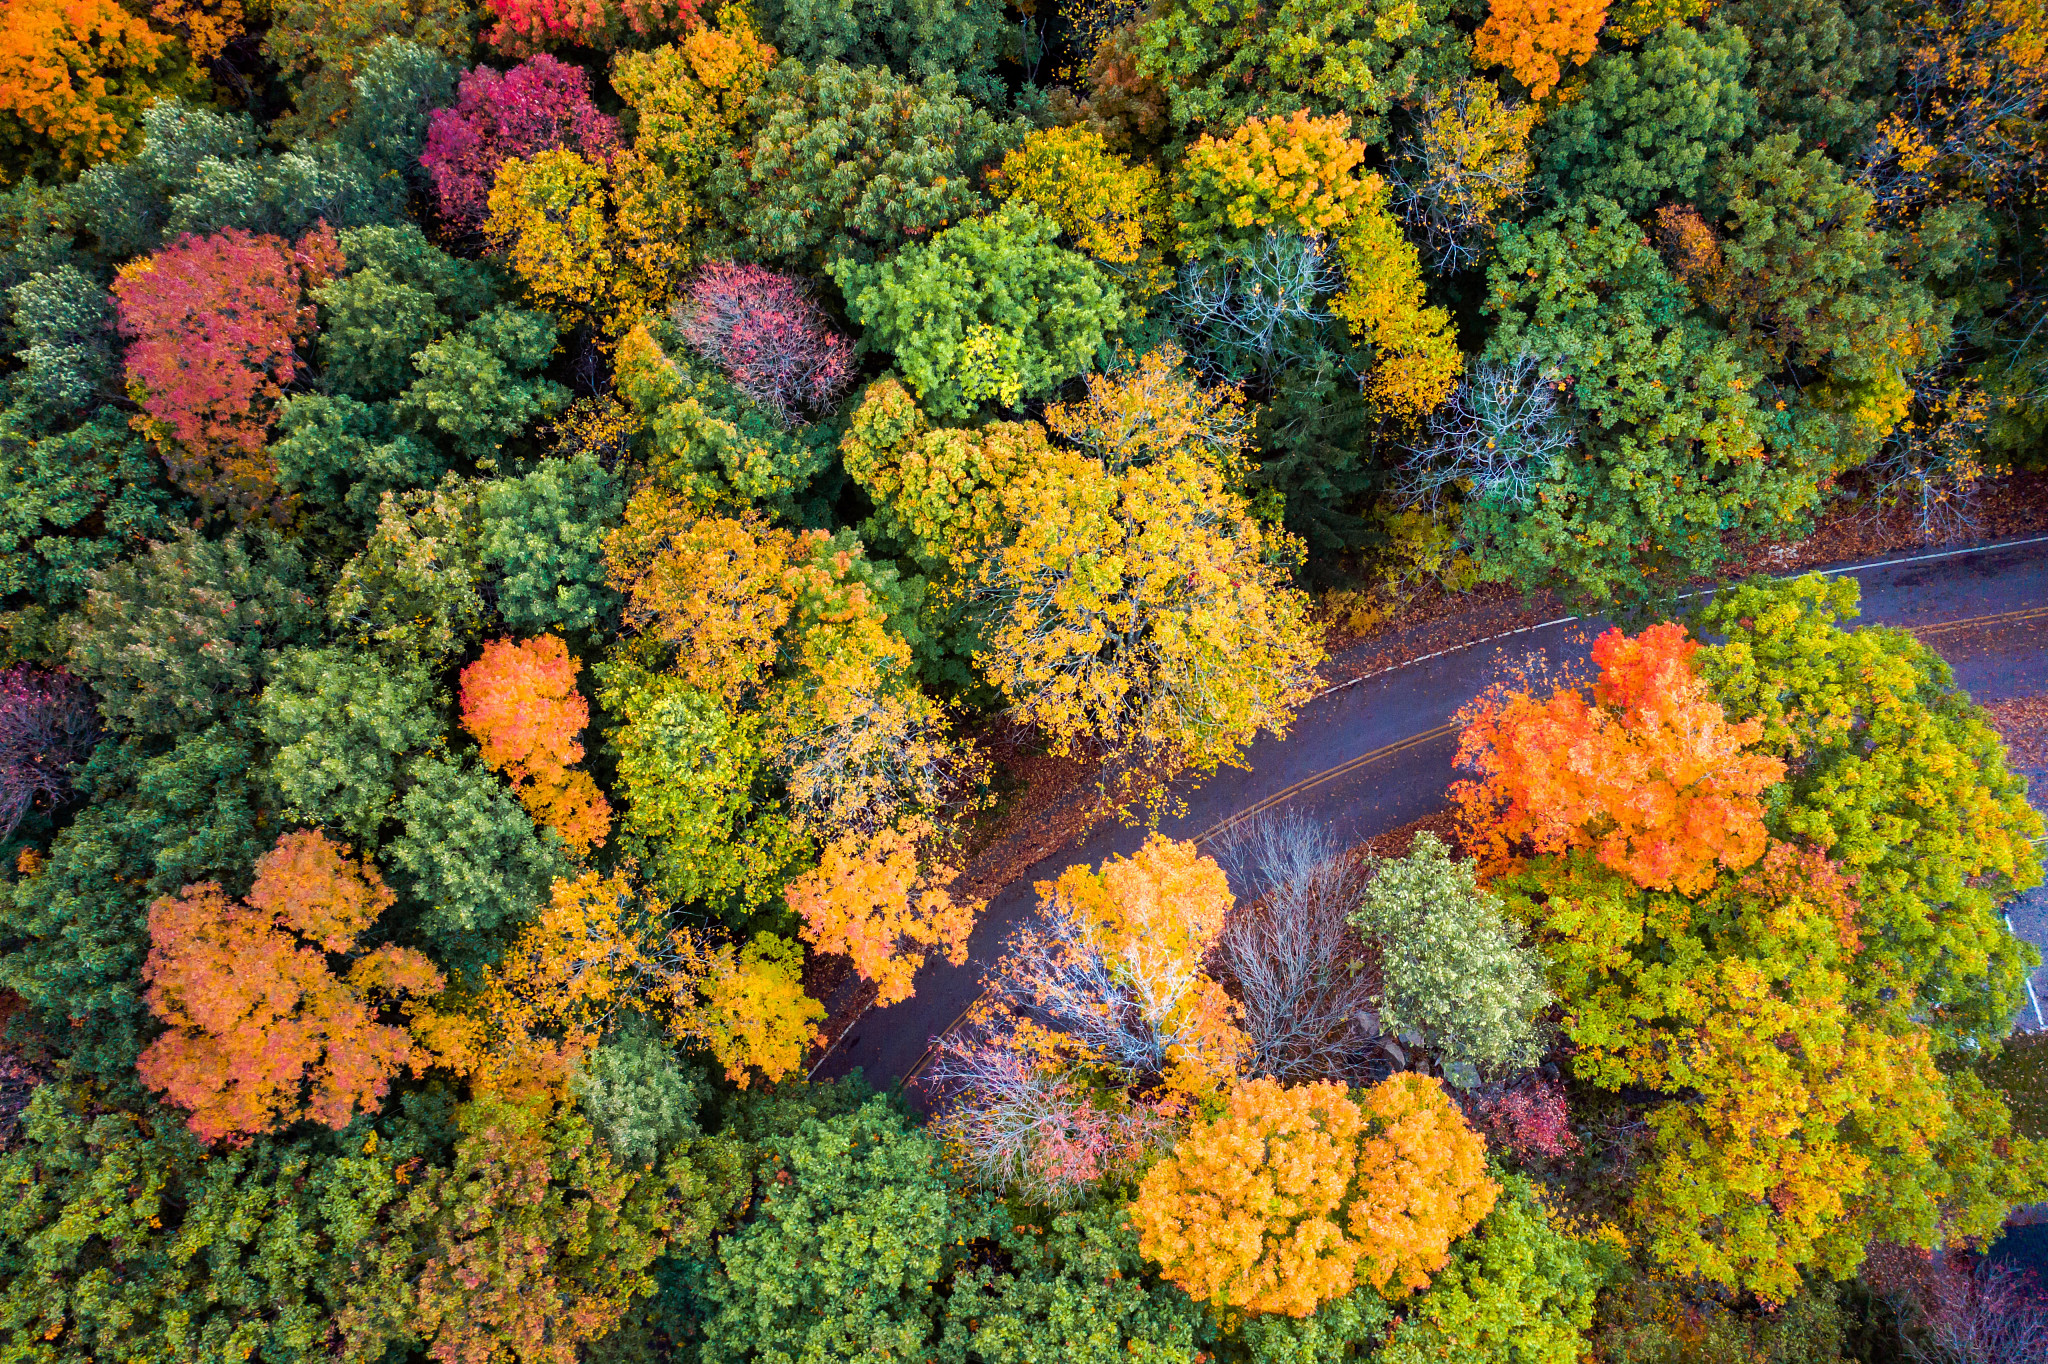 Forest displaying fall colors of orange, red and yellow with a road twisting through the landscape